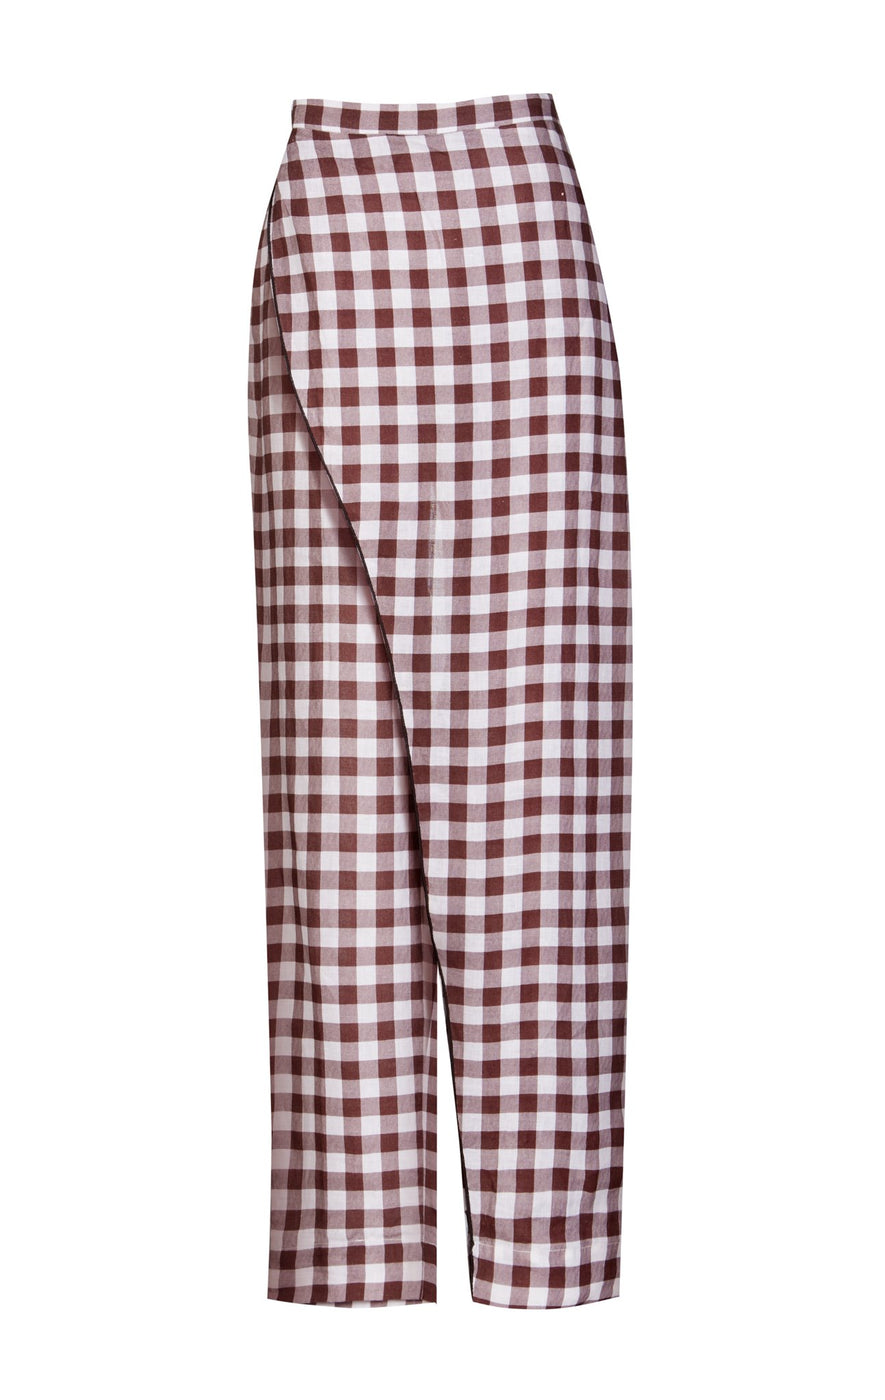 Greenport Pants in Smores Gingham